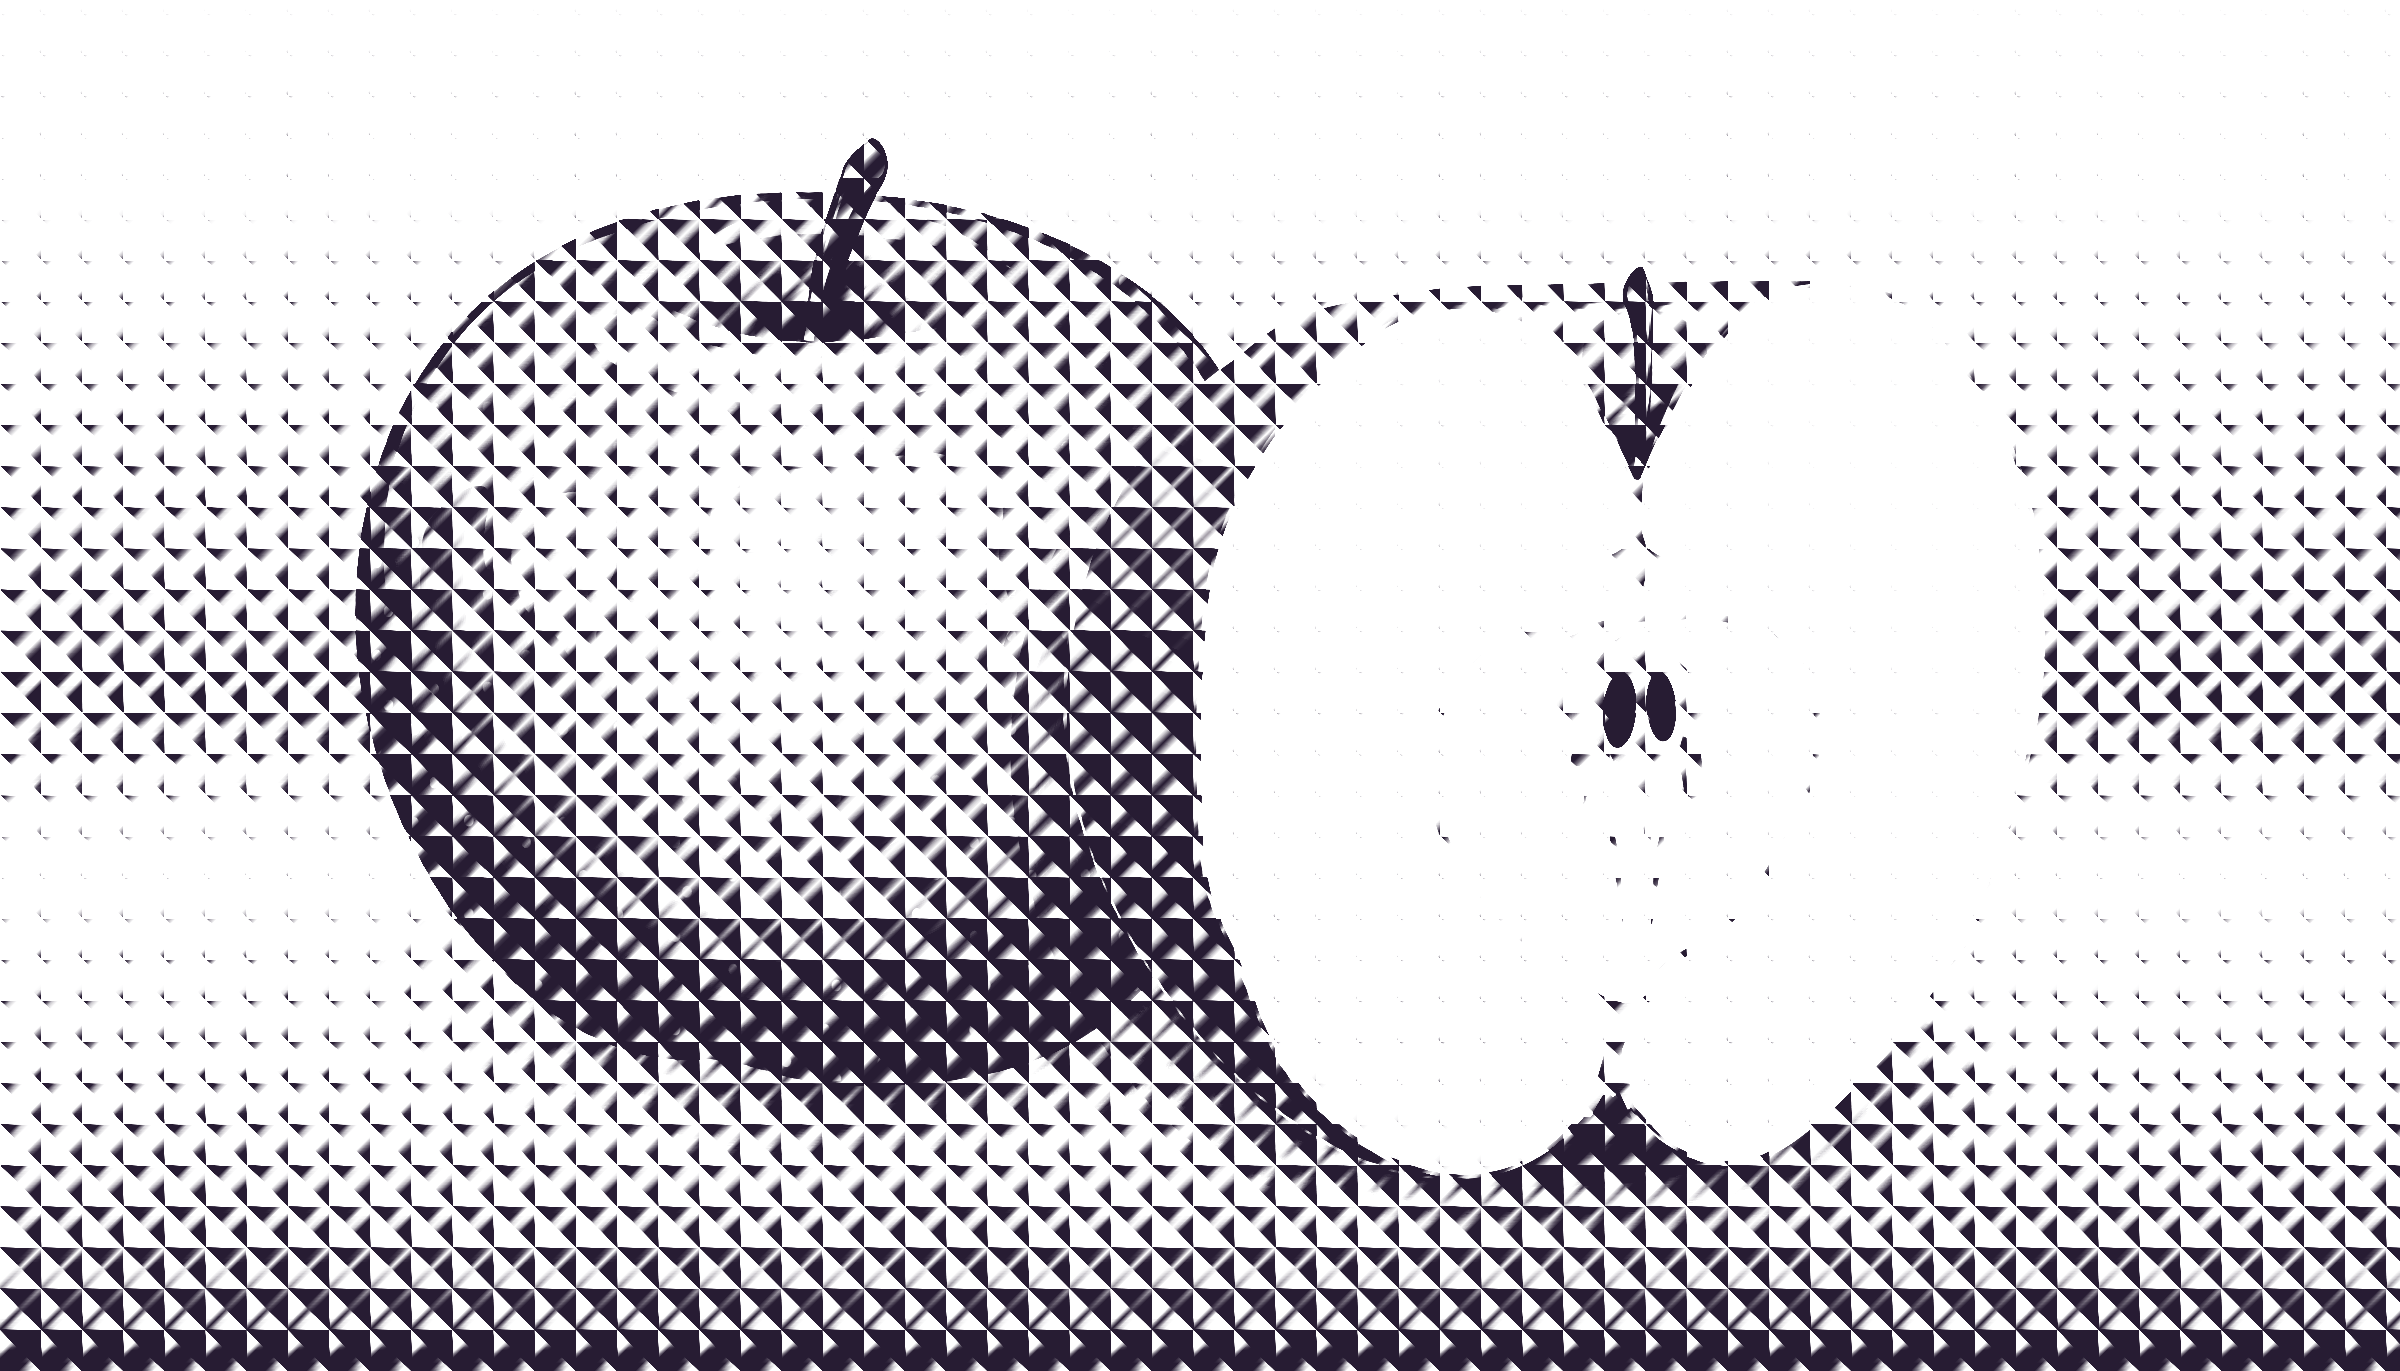 halftone apple 14 by Lazur URH